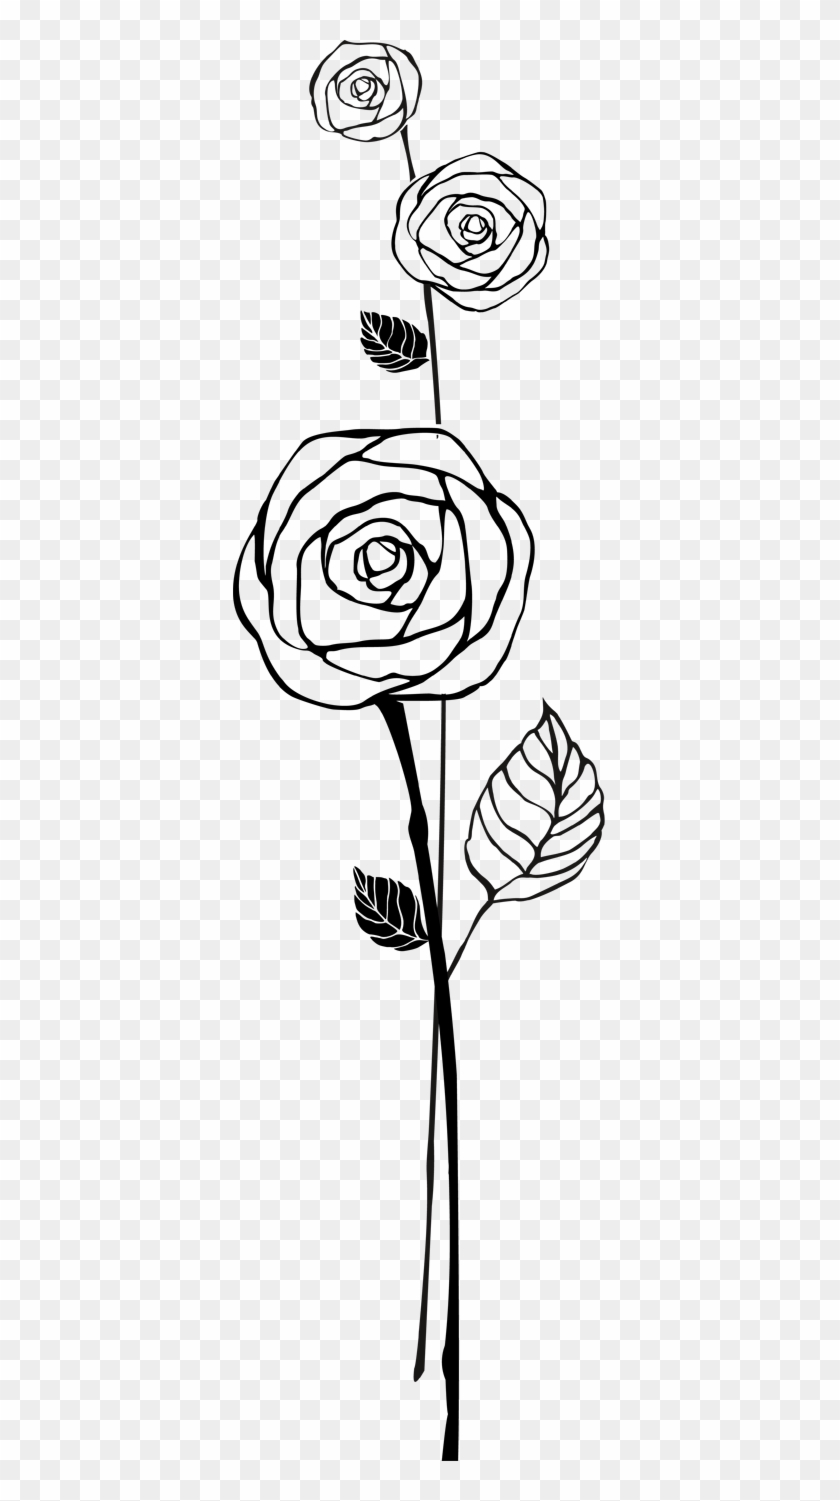 Texas outline rose. Png transparent x pngfind